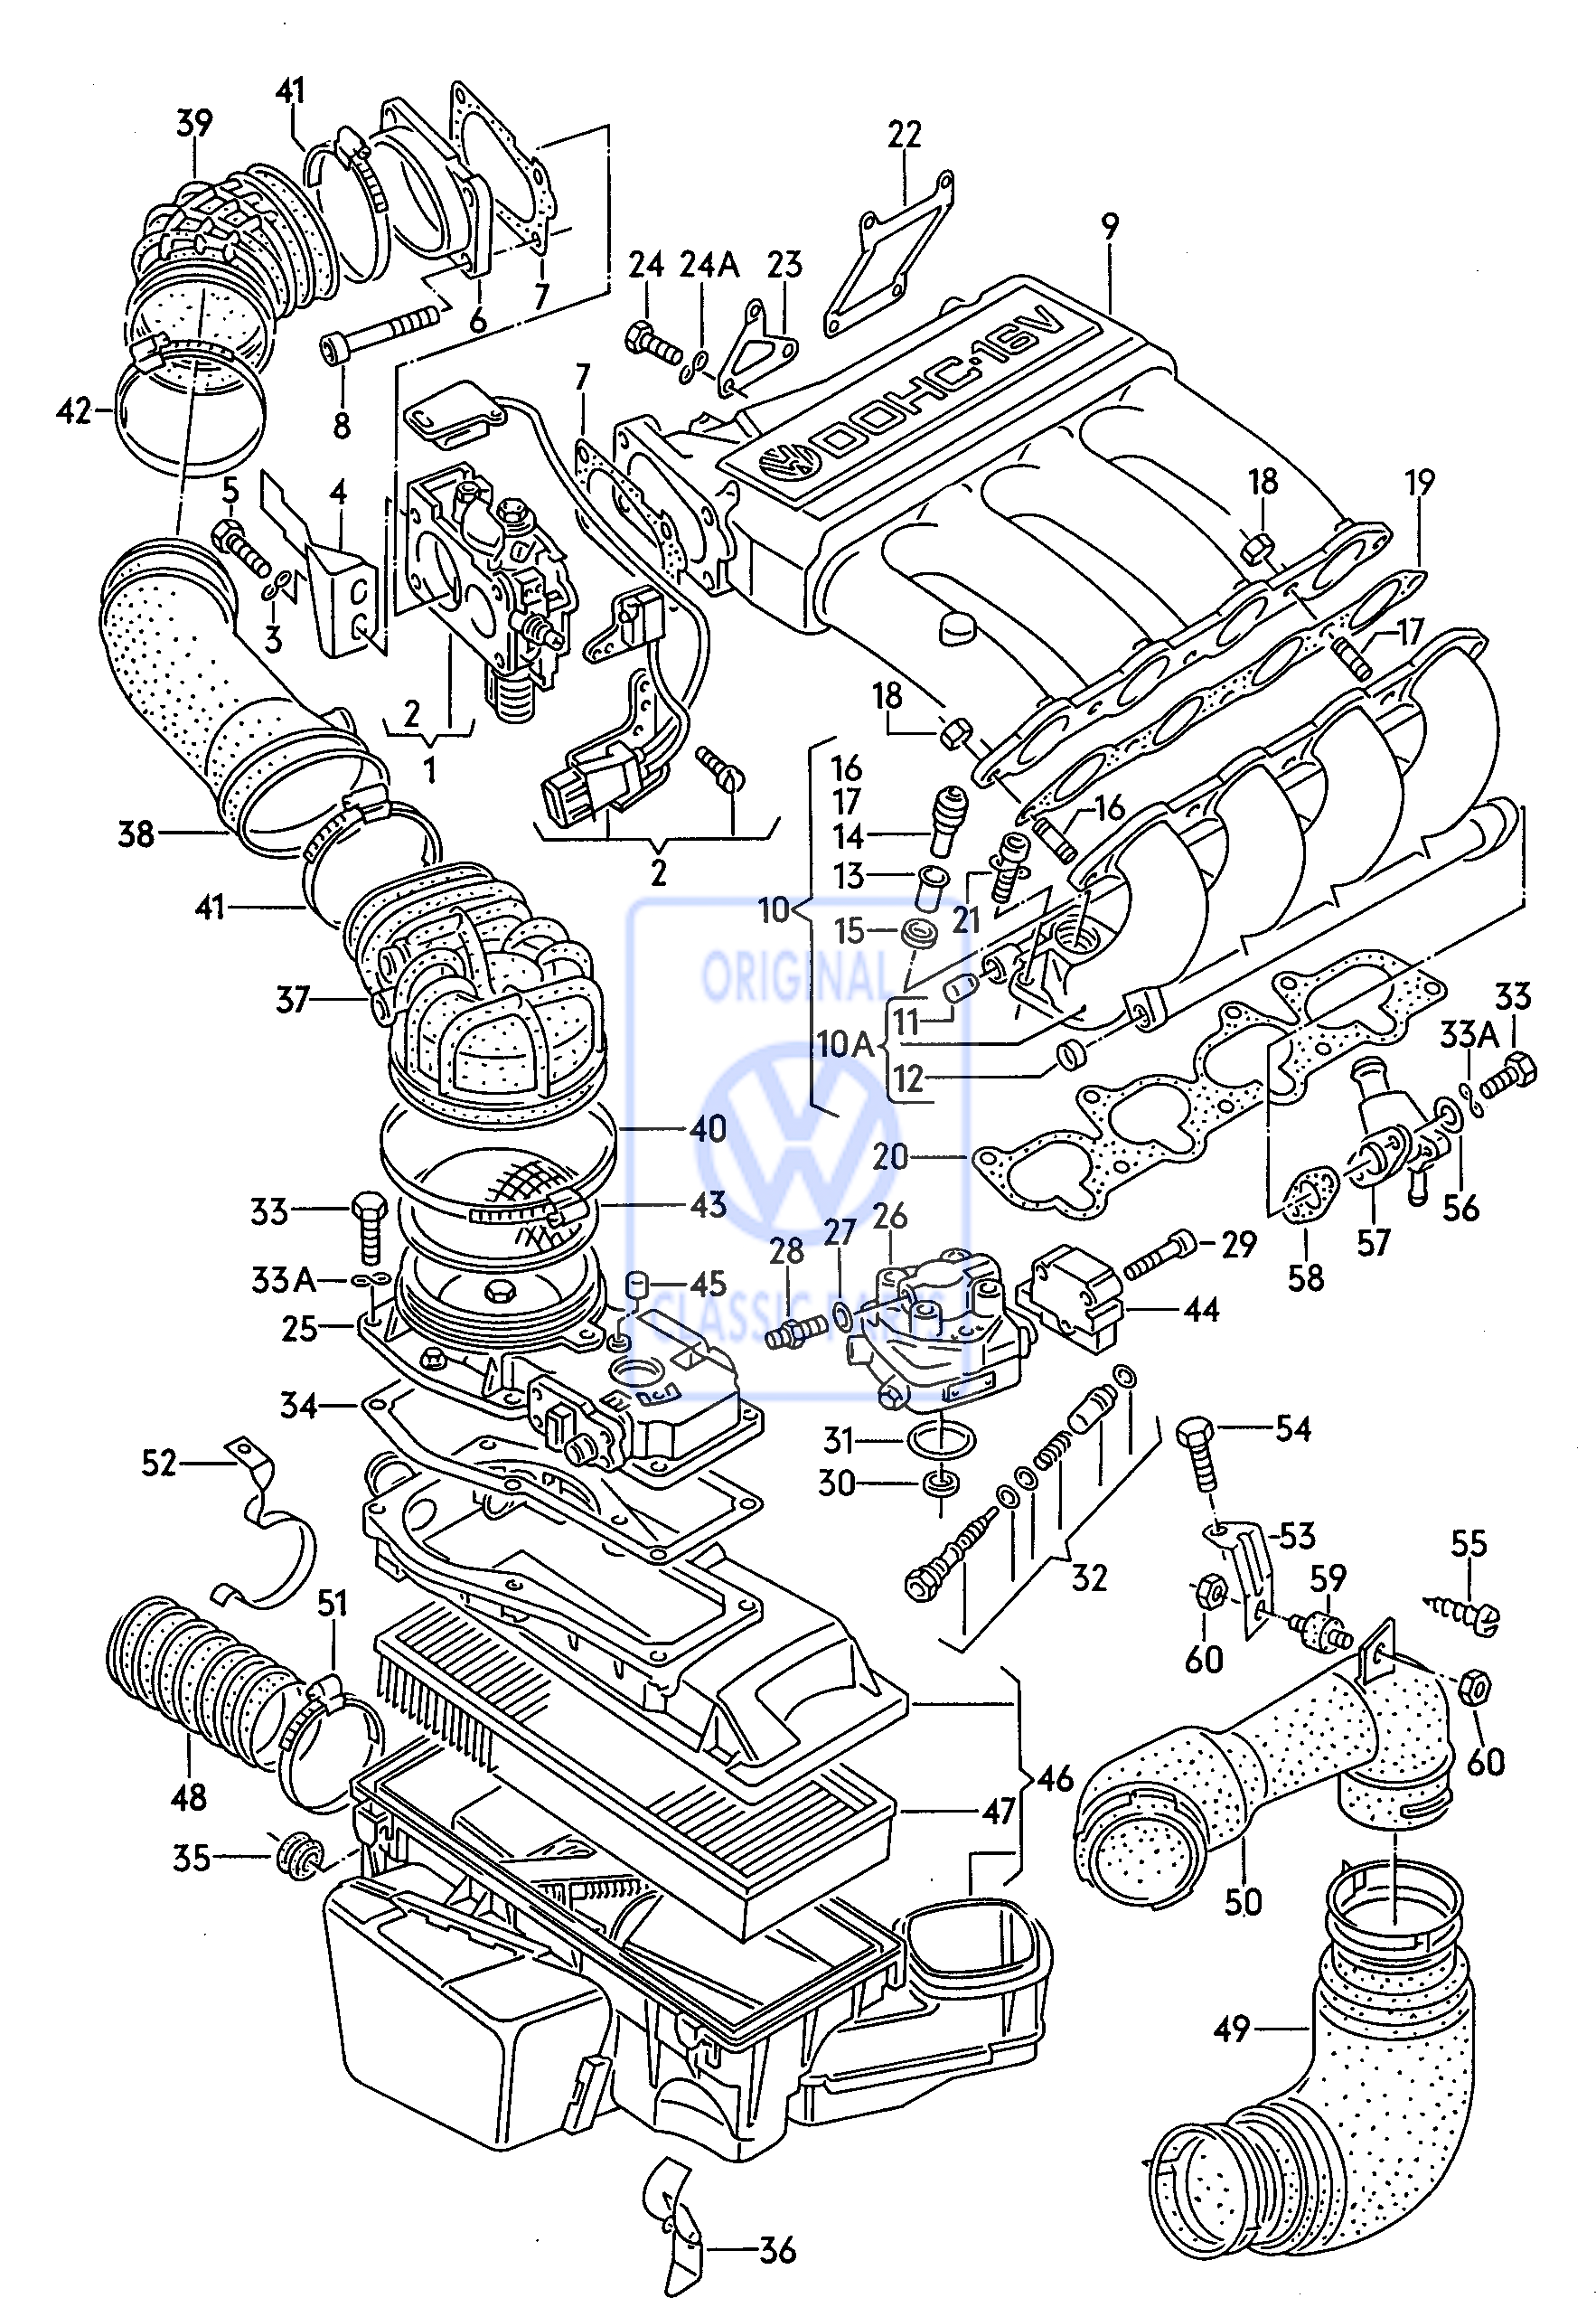 Vw Golf Gti Mk2 Wiring Diagram